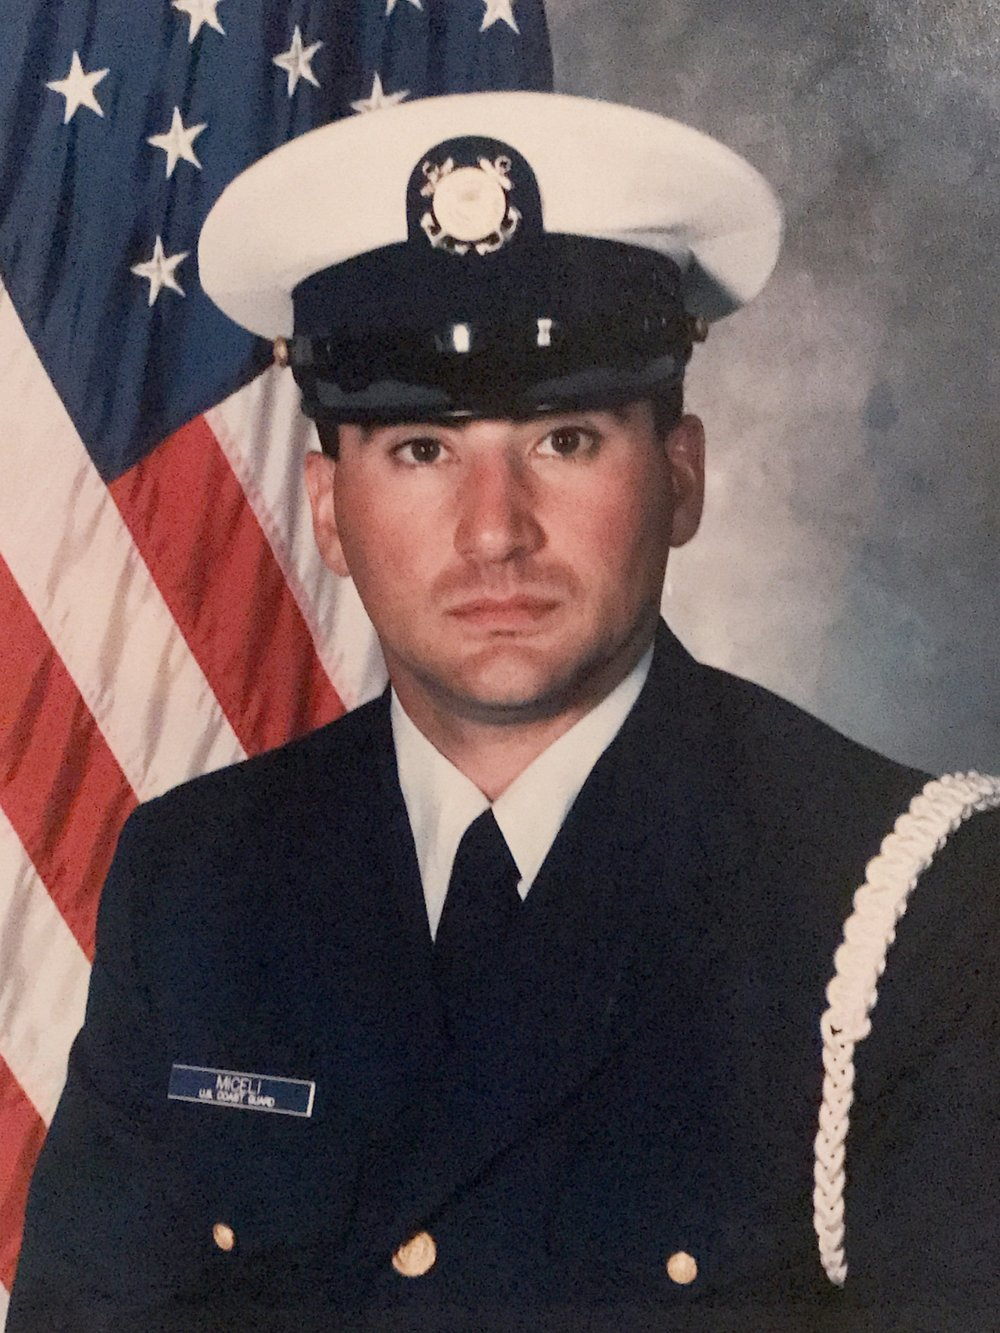 Giuseppe Miceli - Rank: Petty Officer E-4/AMT3 (Aviation Maintenance)1995-1999USCG Cutter ADAK WPB-1333- Sandy Hook, NJUSCG Air Station BrooklynUSCG Air Station Atlantic CityTemporary Assignments to USCG Air Station Borinquen-Aguadilla, Puerto Rico; mutiple deployments on many different Cutters. Medals/Awards: Marksman Pistol/Rifle; Meritorious Service Award;Meritorious Unit Award; National Defense; Good Conduct (Most Prized)